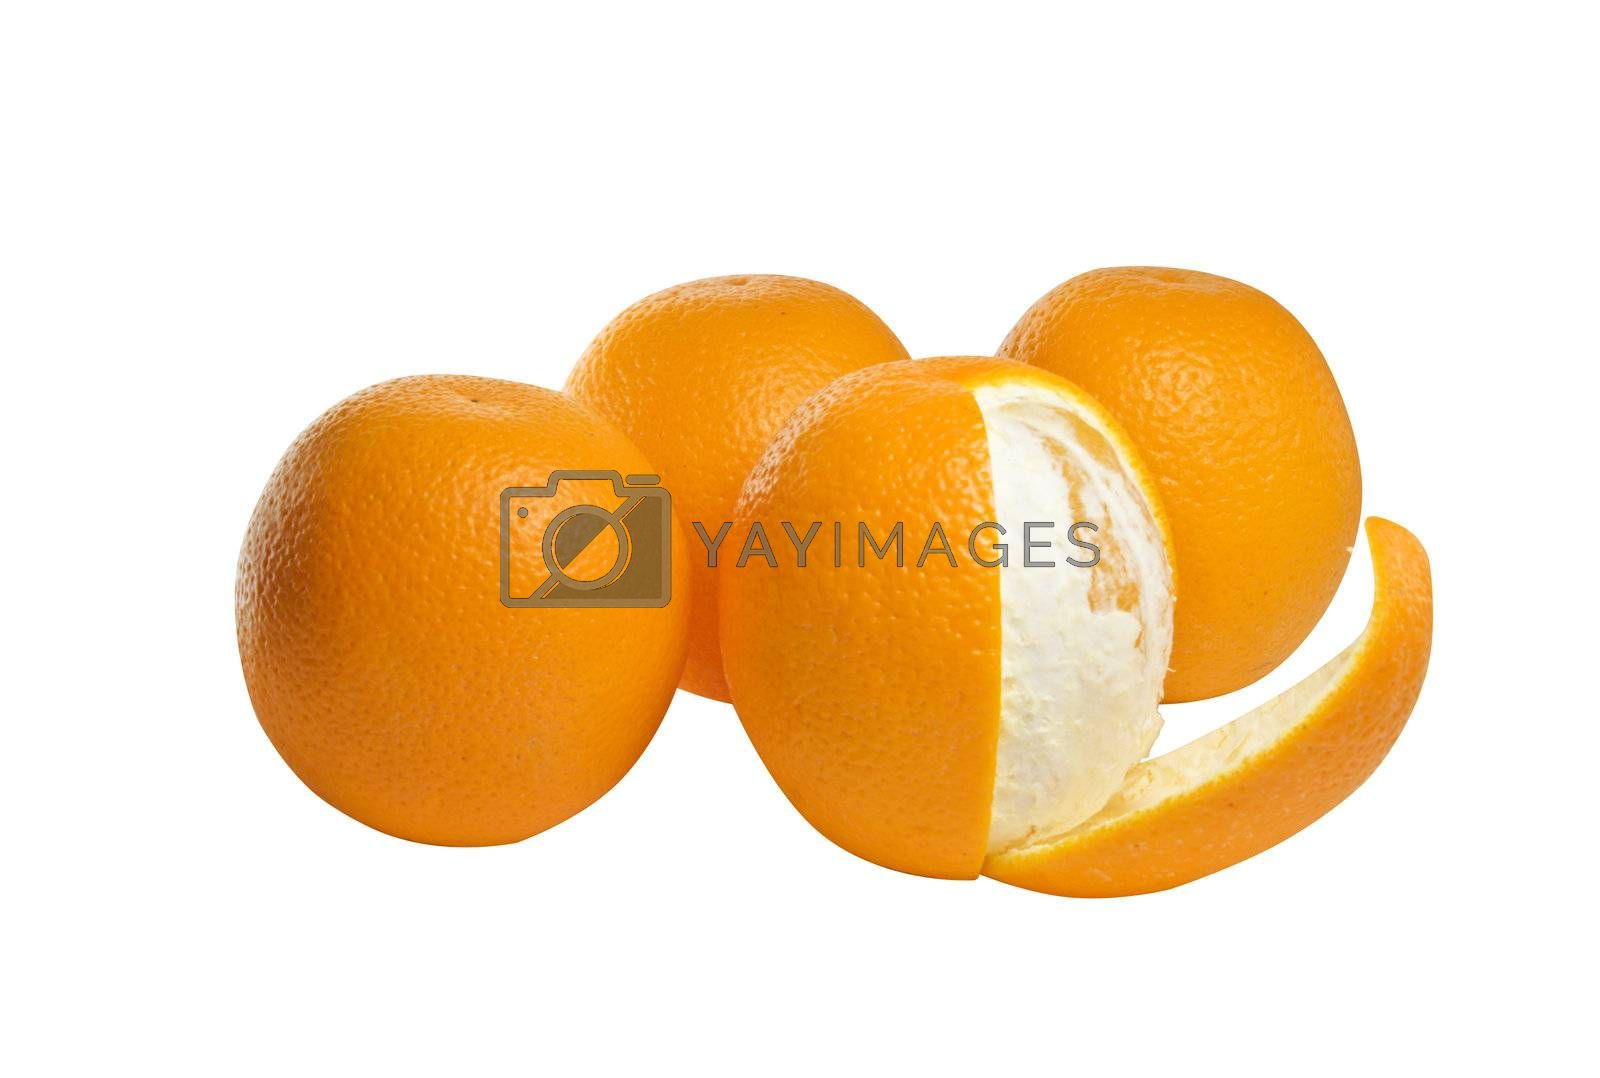 Four oranges set against a white background.